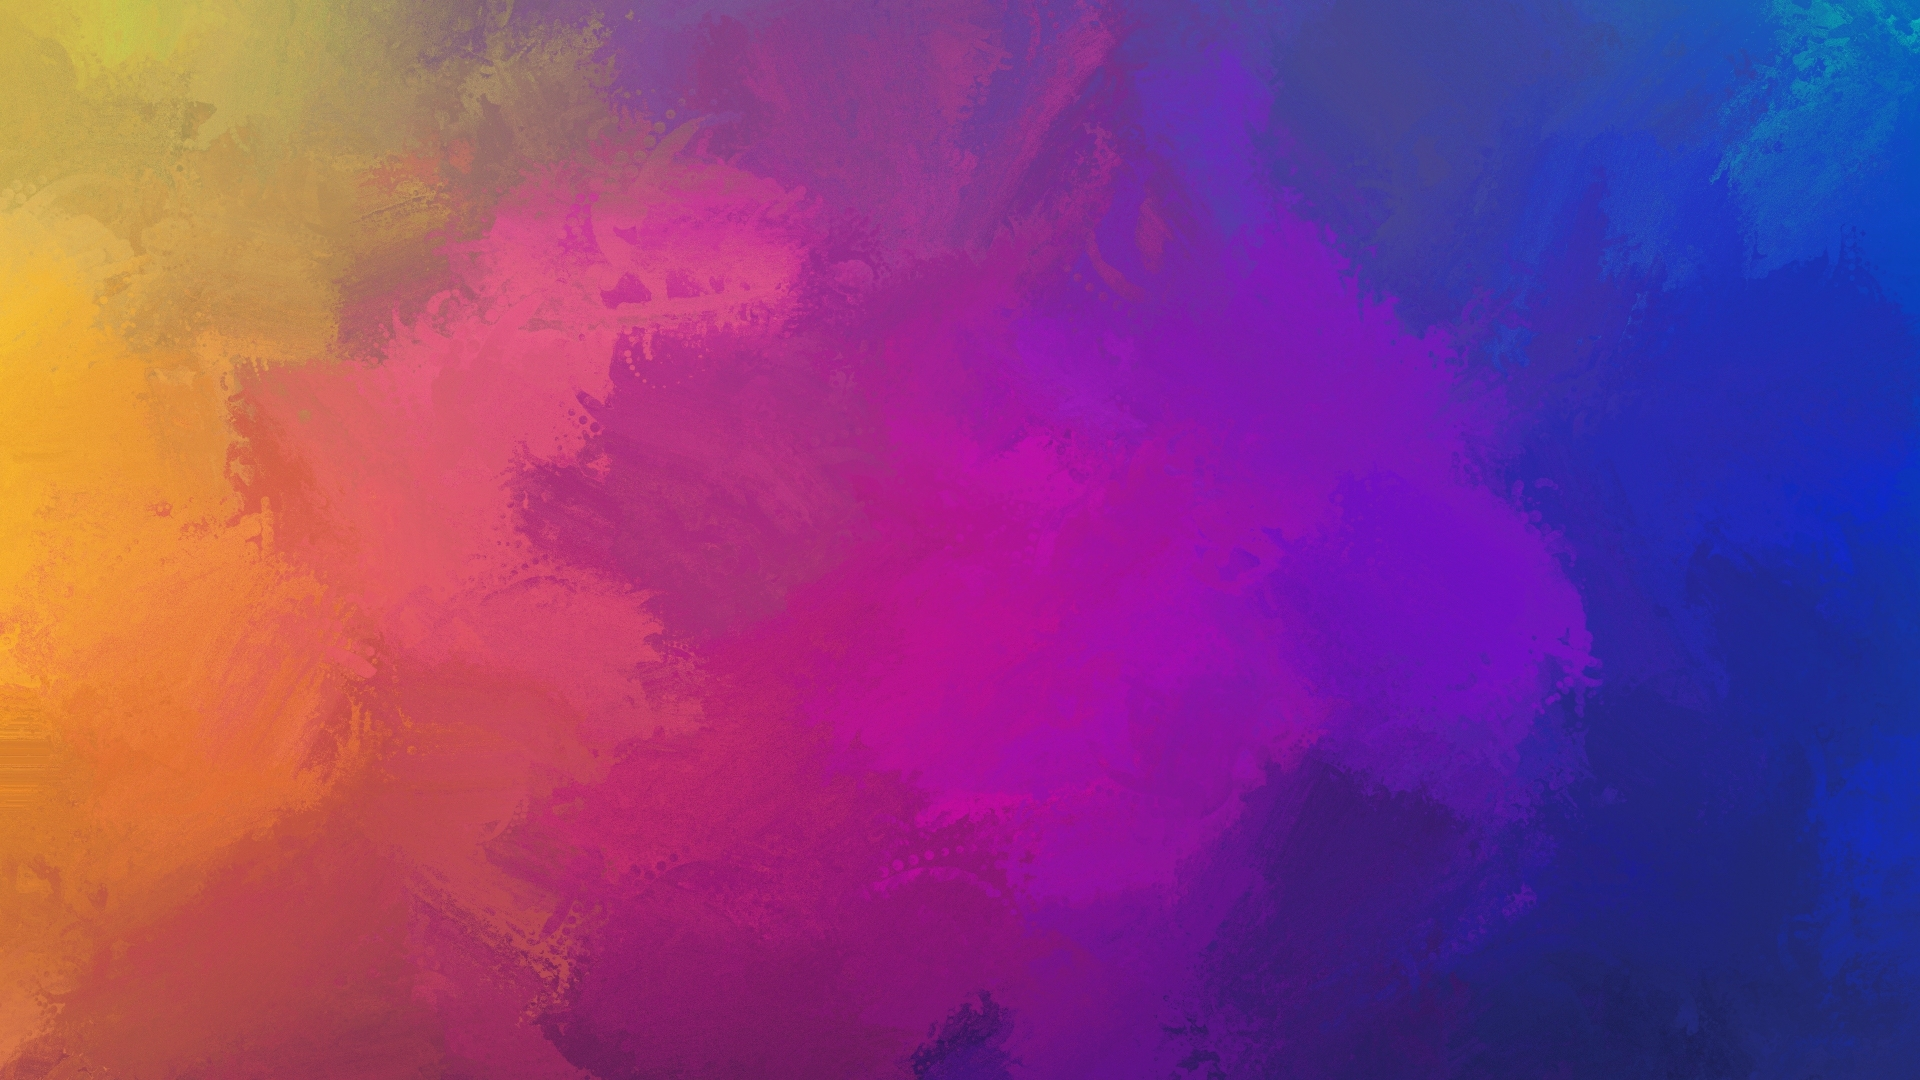 1920x1080 Color Palette Abstract 4k 1080p Laptop Full Hd Wallpaper Hd Abstract 4k Wallpapers Images Photos And Background